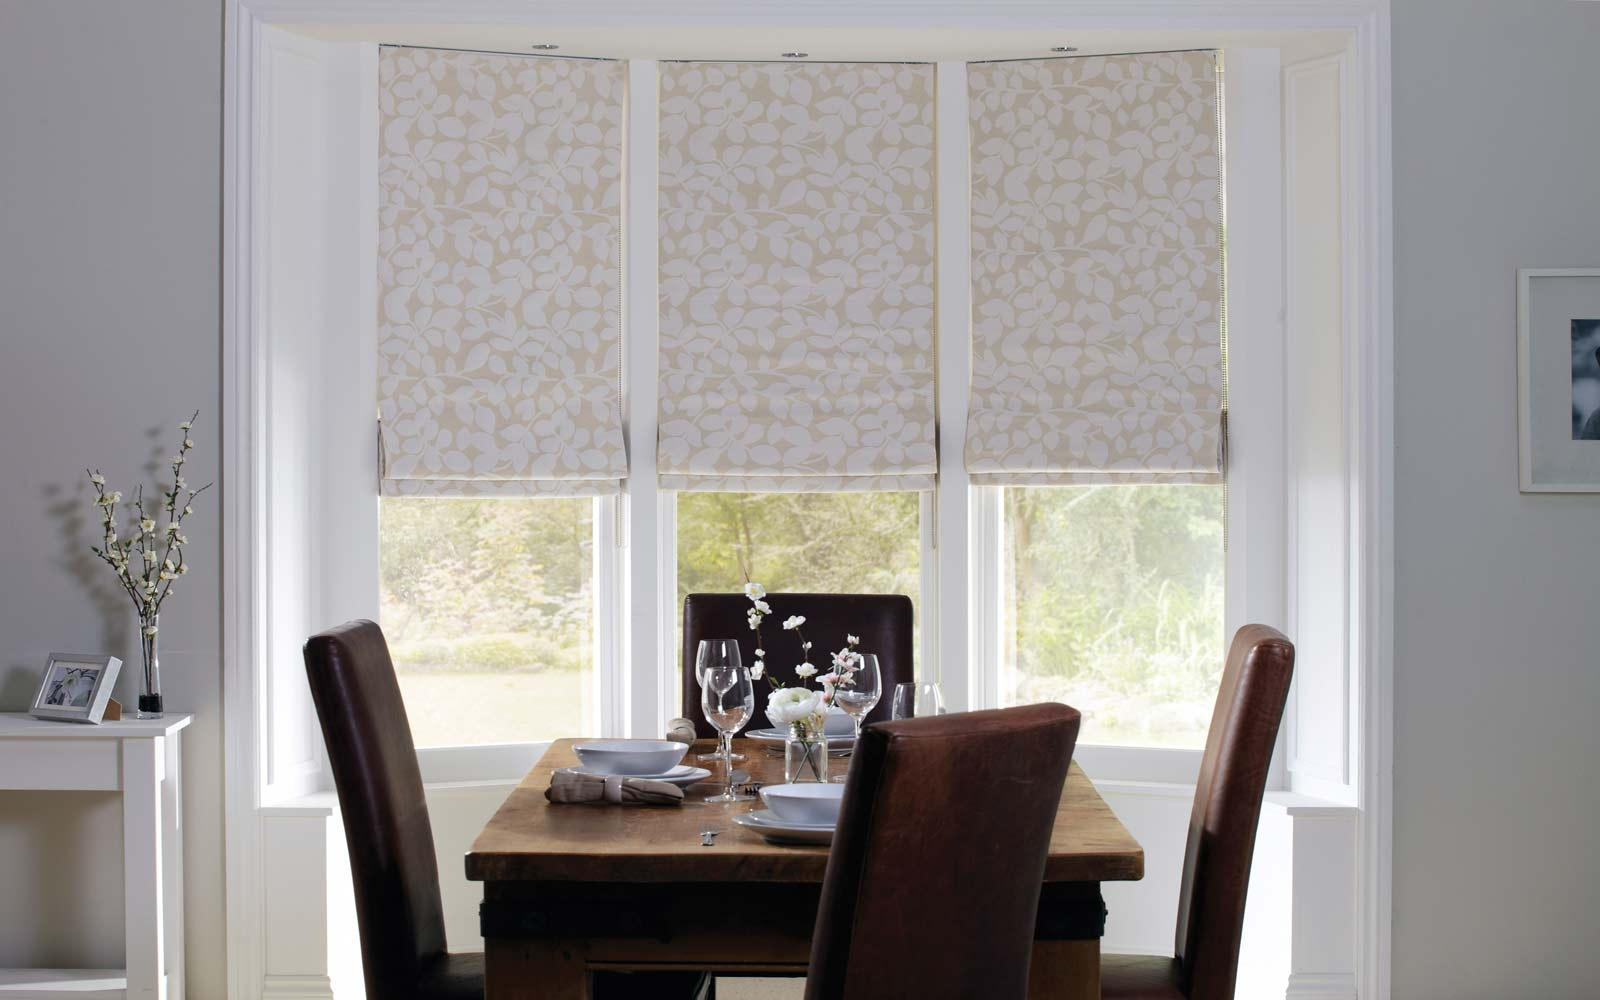 Roman Blinds Surrey Blinds Shutters Pertaining To Long Roman Blinds (Image 15 of 15)